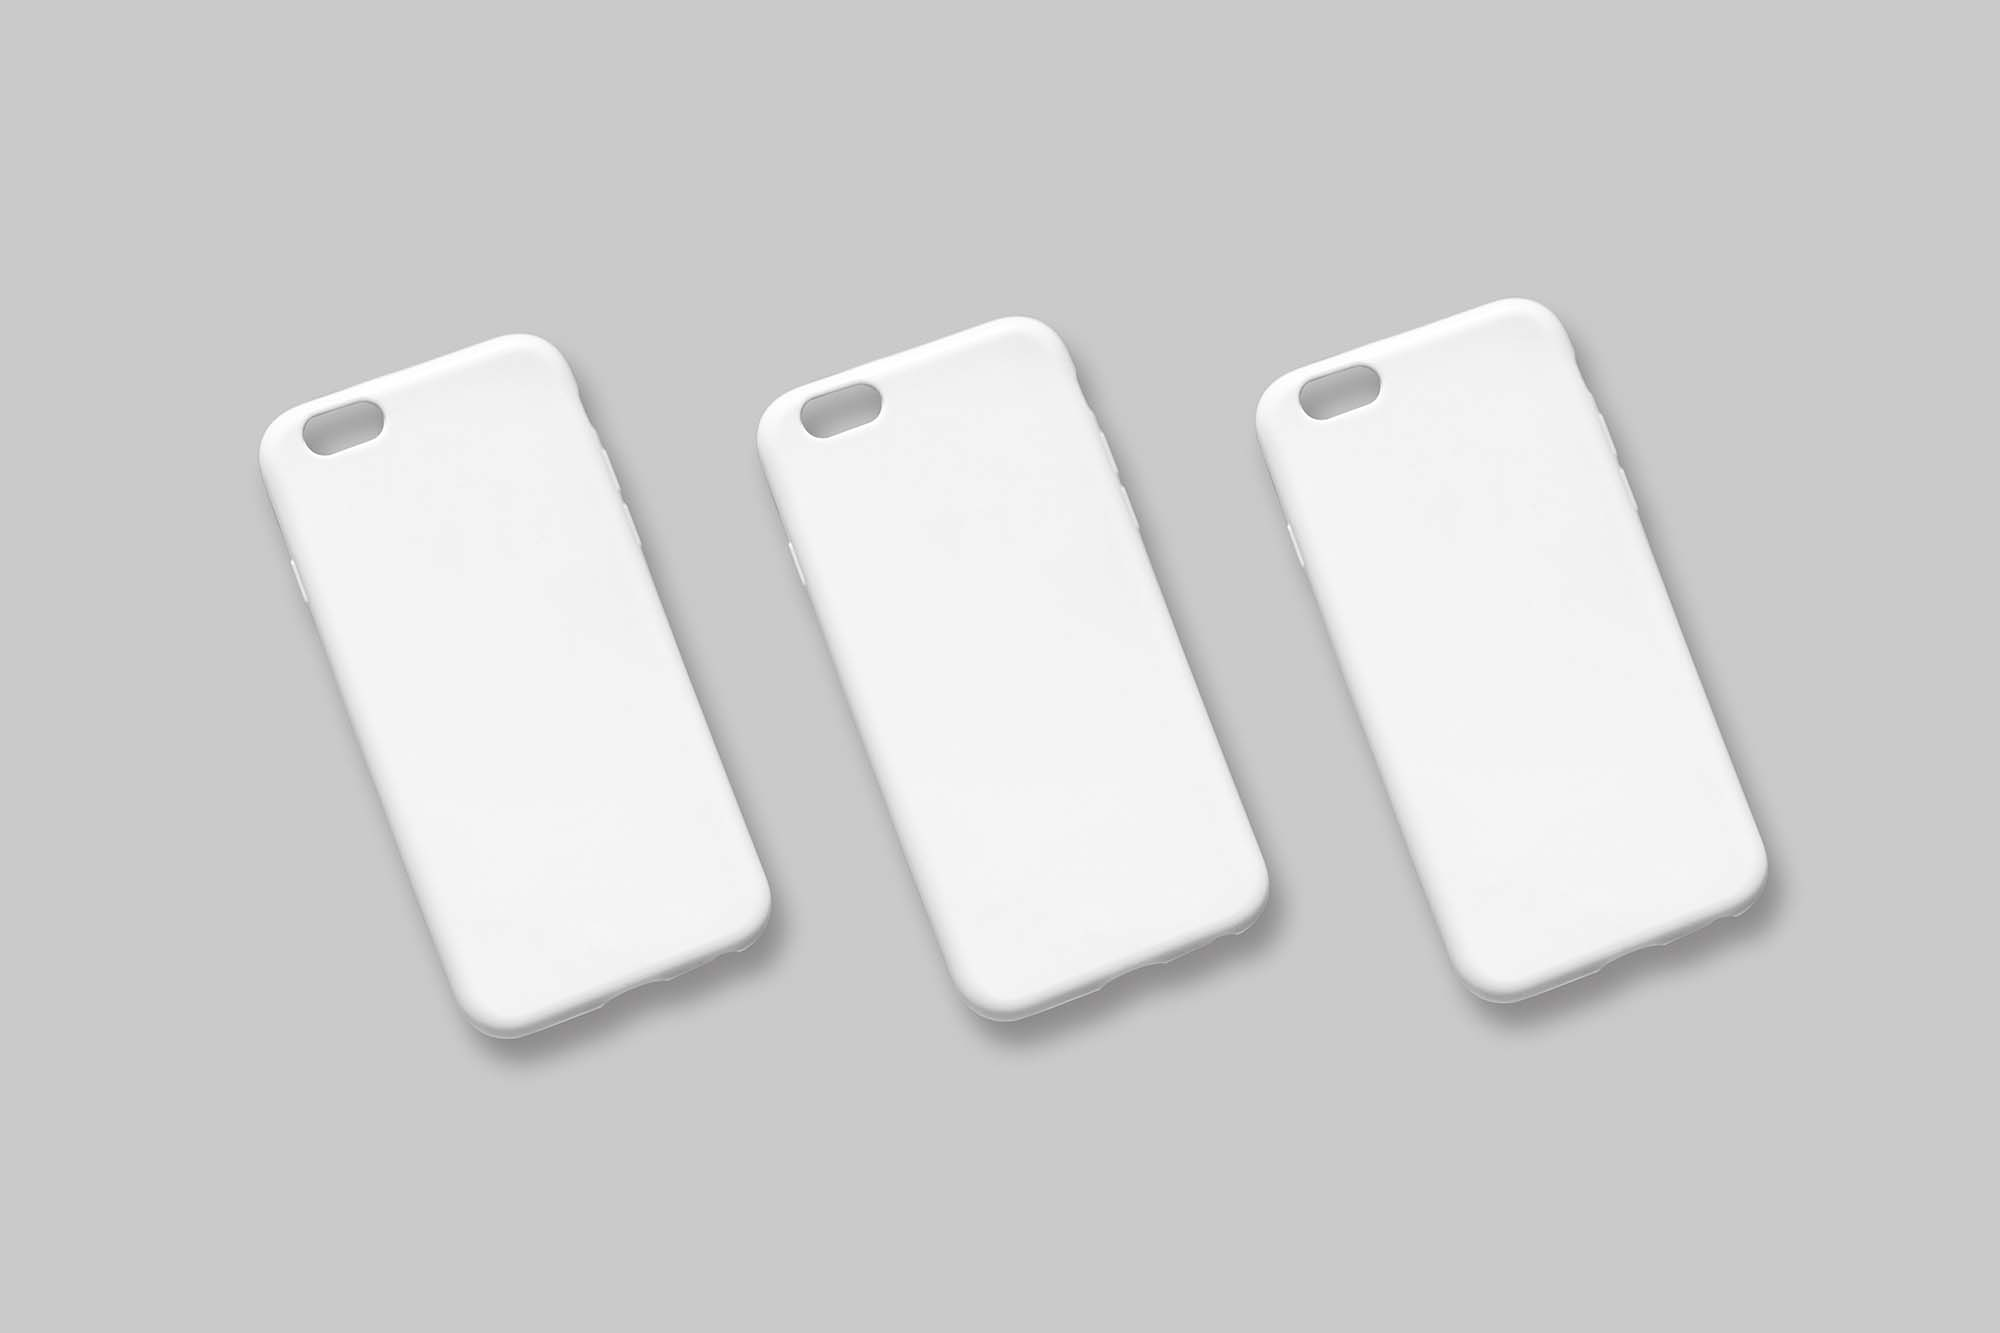 iPhone Case Mockup